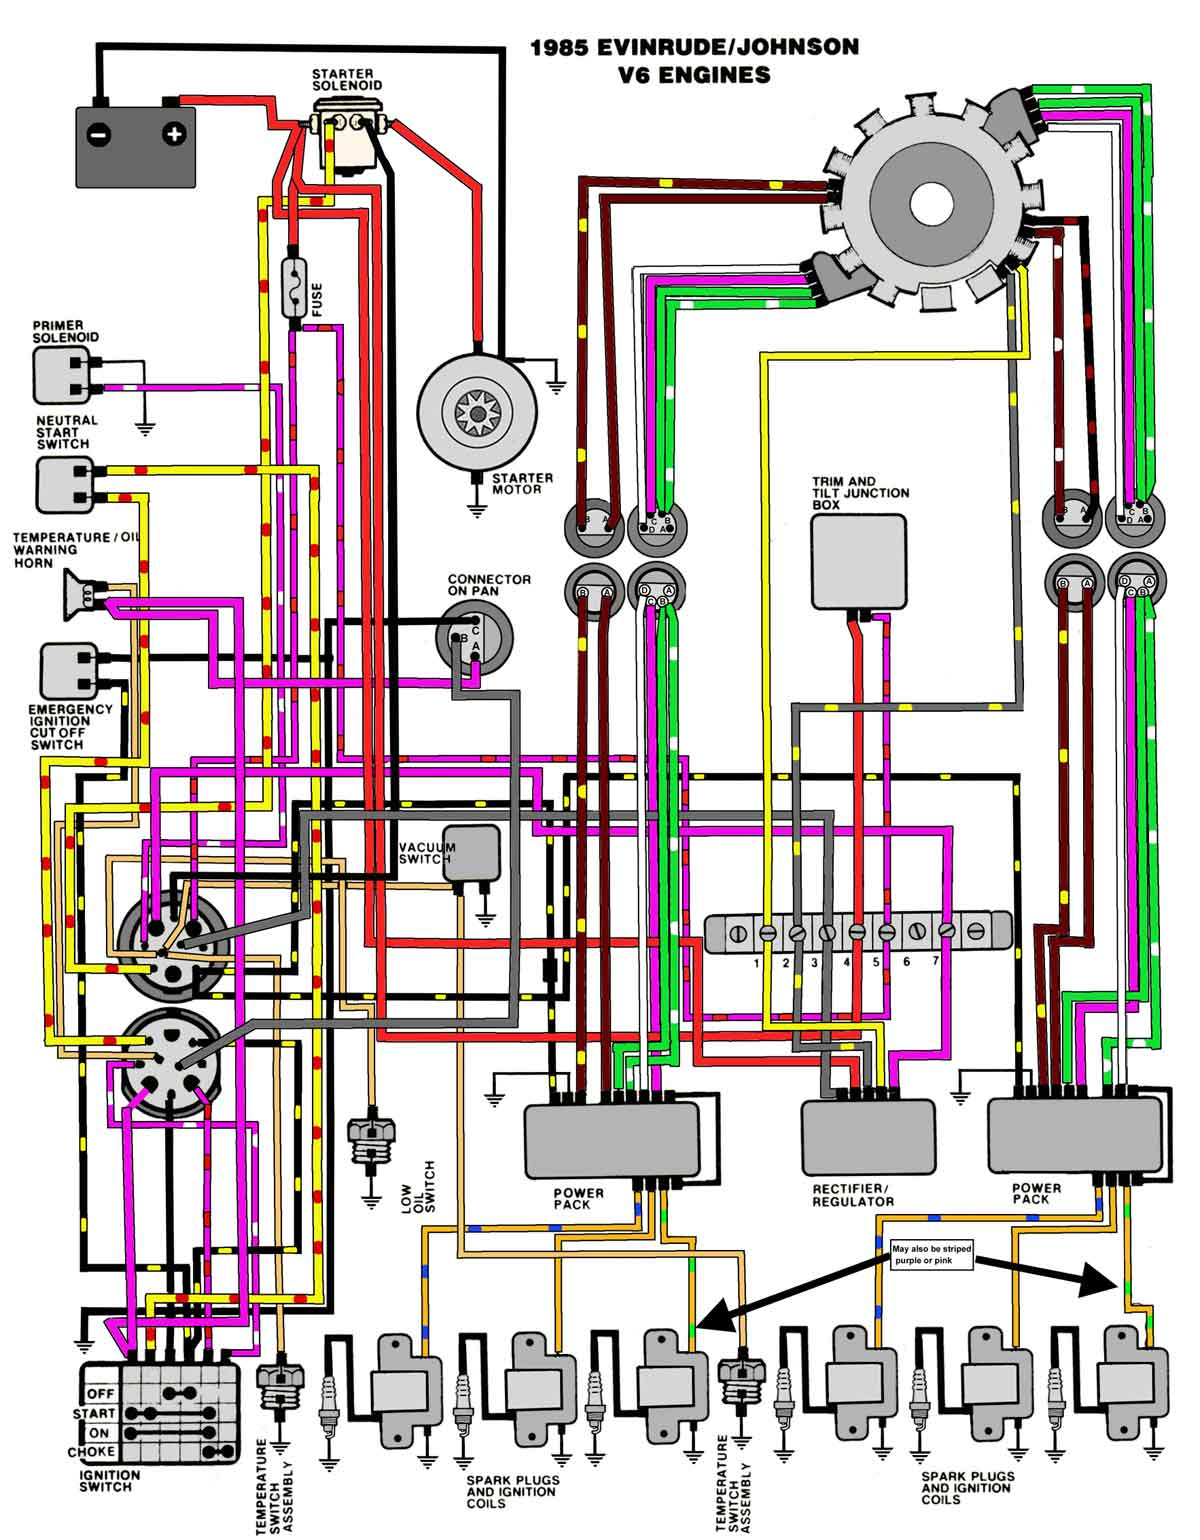 85_V6 mastertech marine evinrude johnson outboard wiring diagrams johnson ignition switch wiring diagram at bayanpartner.co